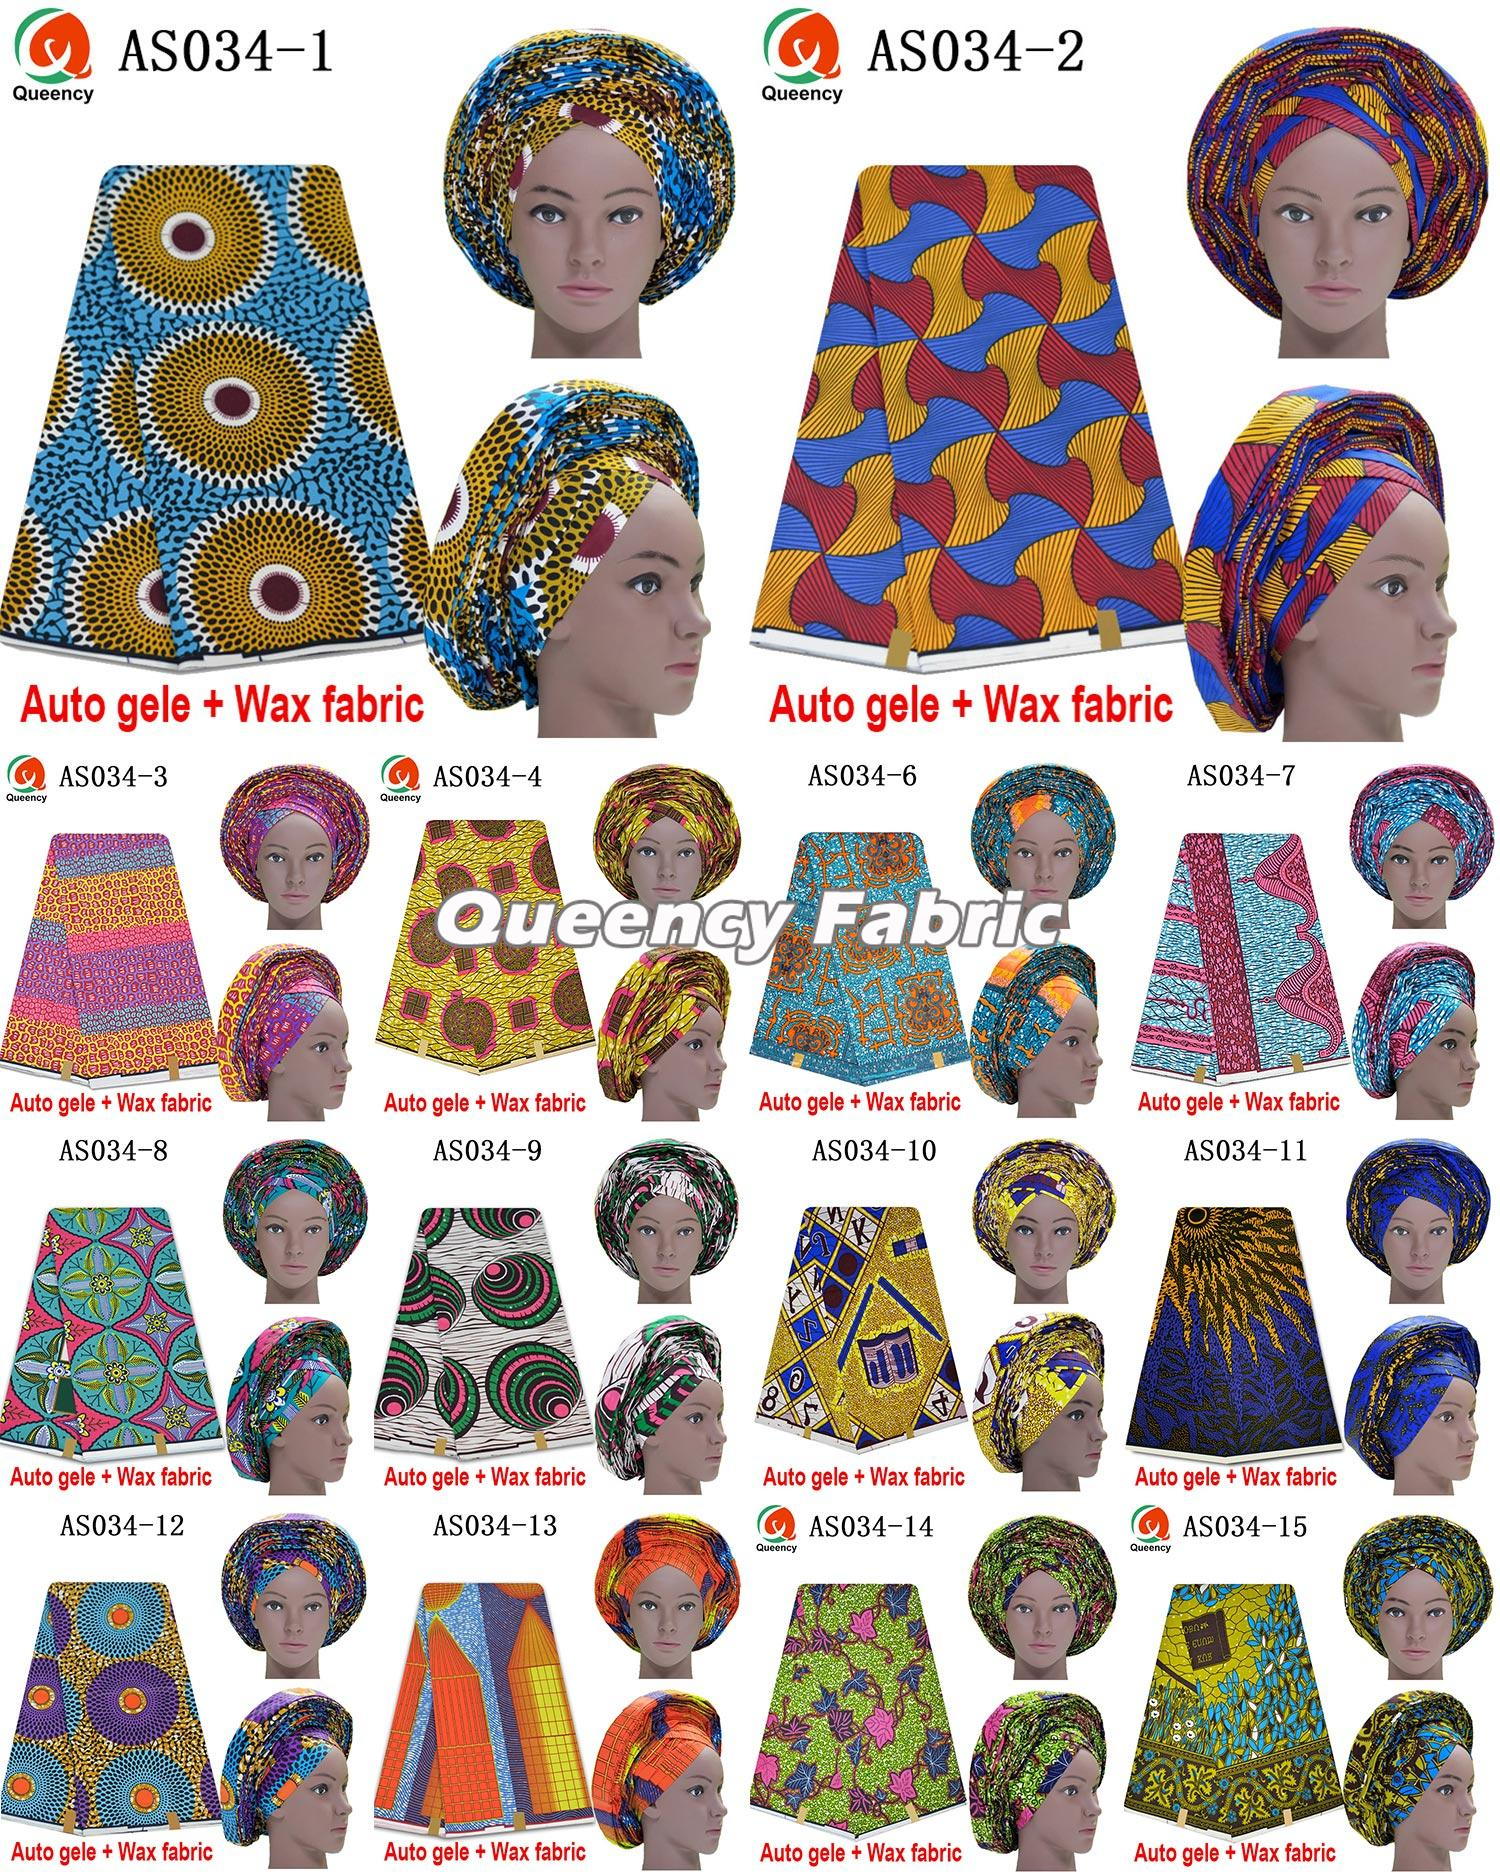 Auto Gele Match Wax Fabric Collection